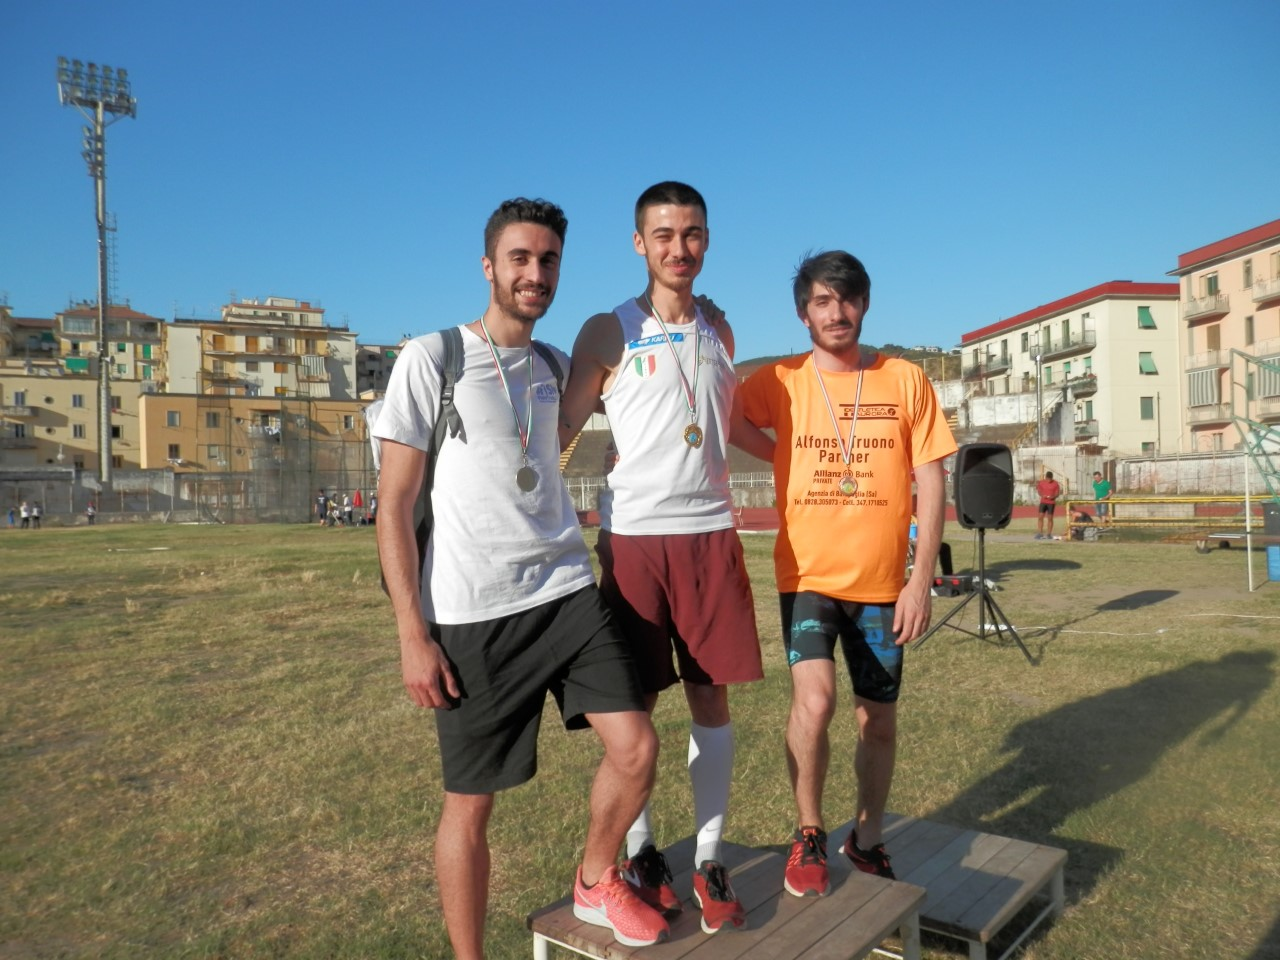 ENTERPRISE: MEDAGLIE AD ASSOLUTI, ALLIEVI E MASTER IN VISTA DELL'UNIVERSIADE